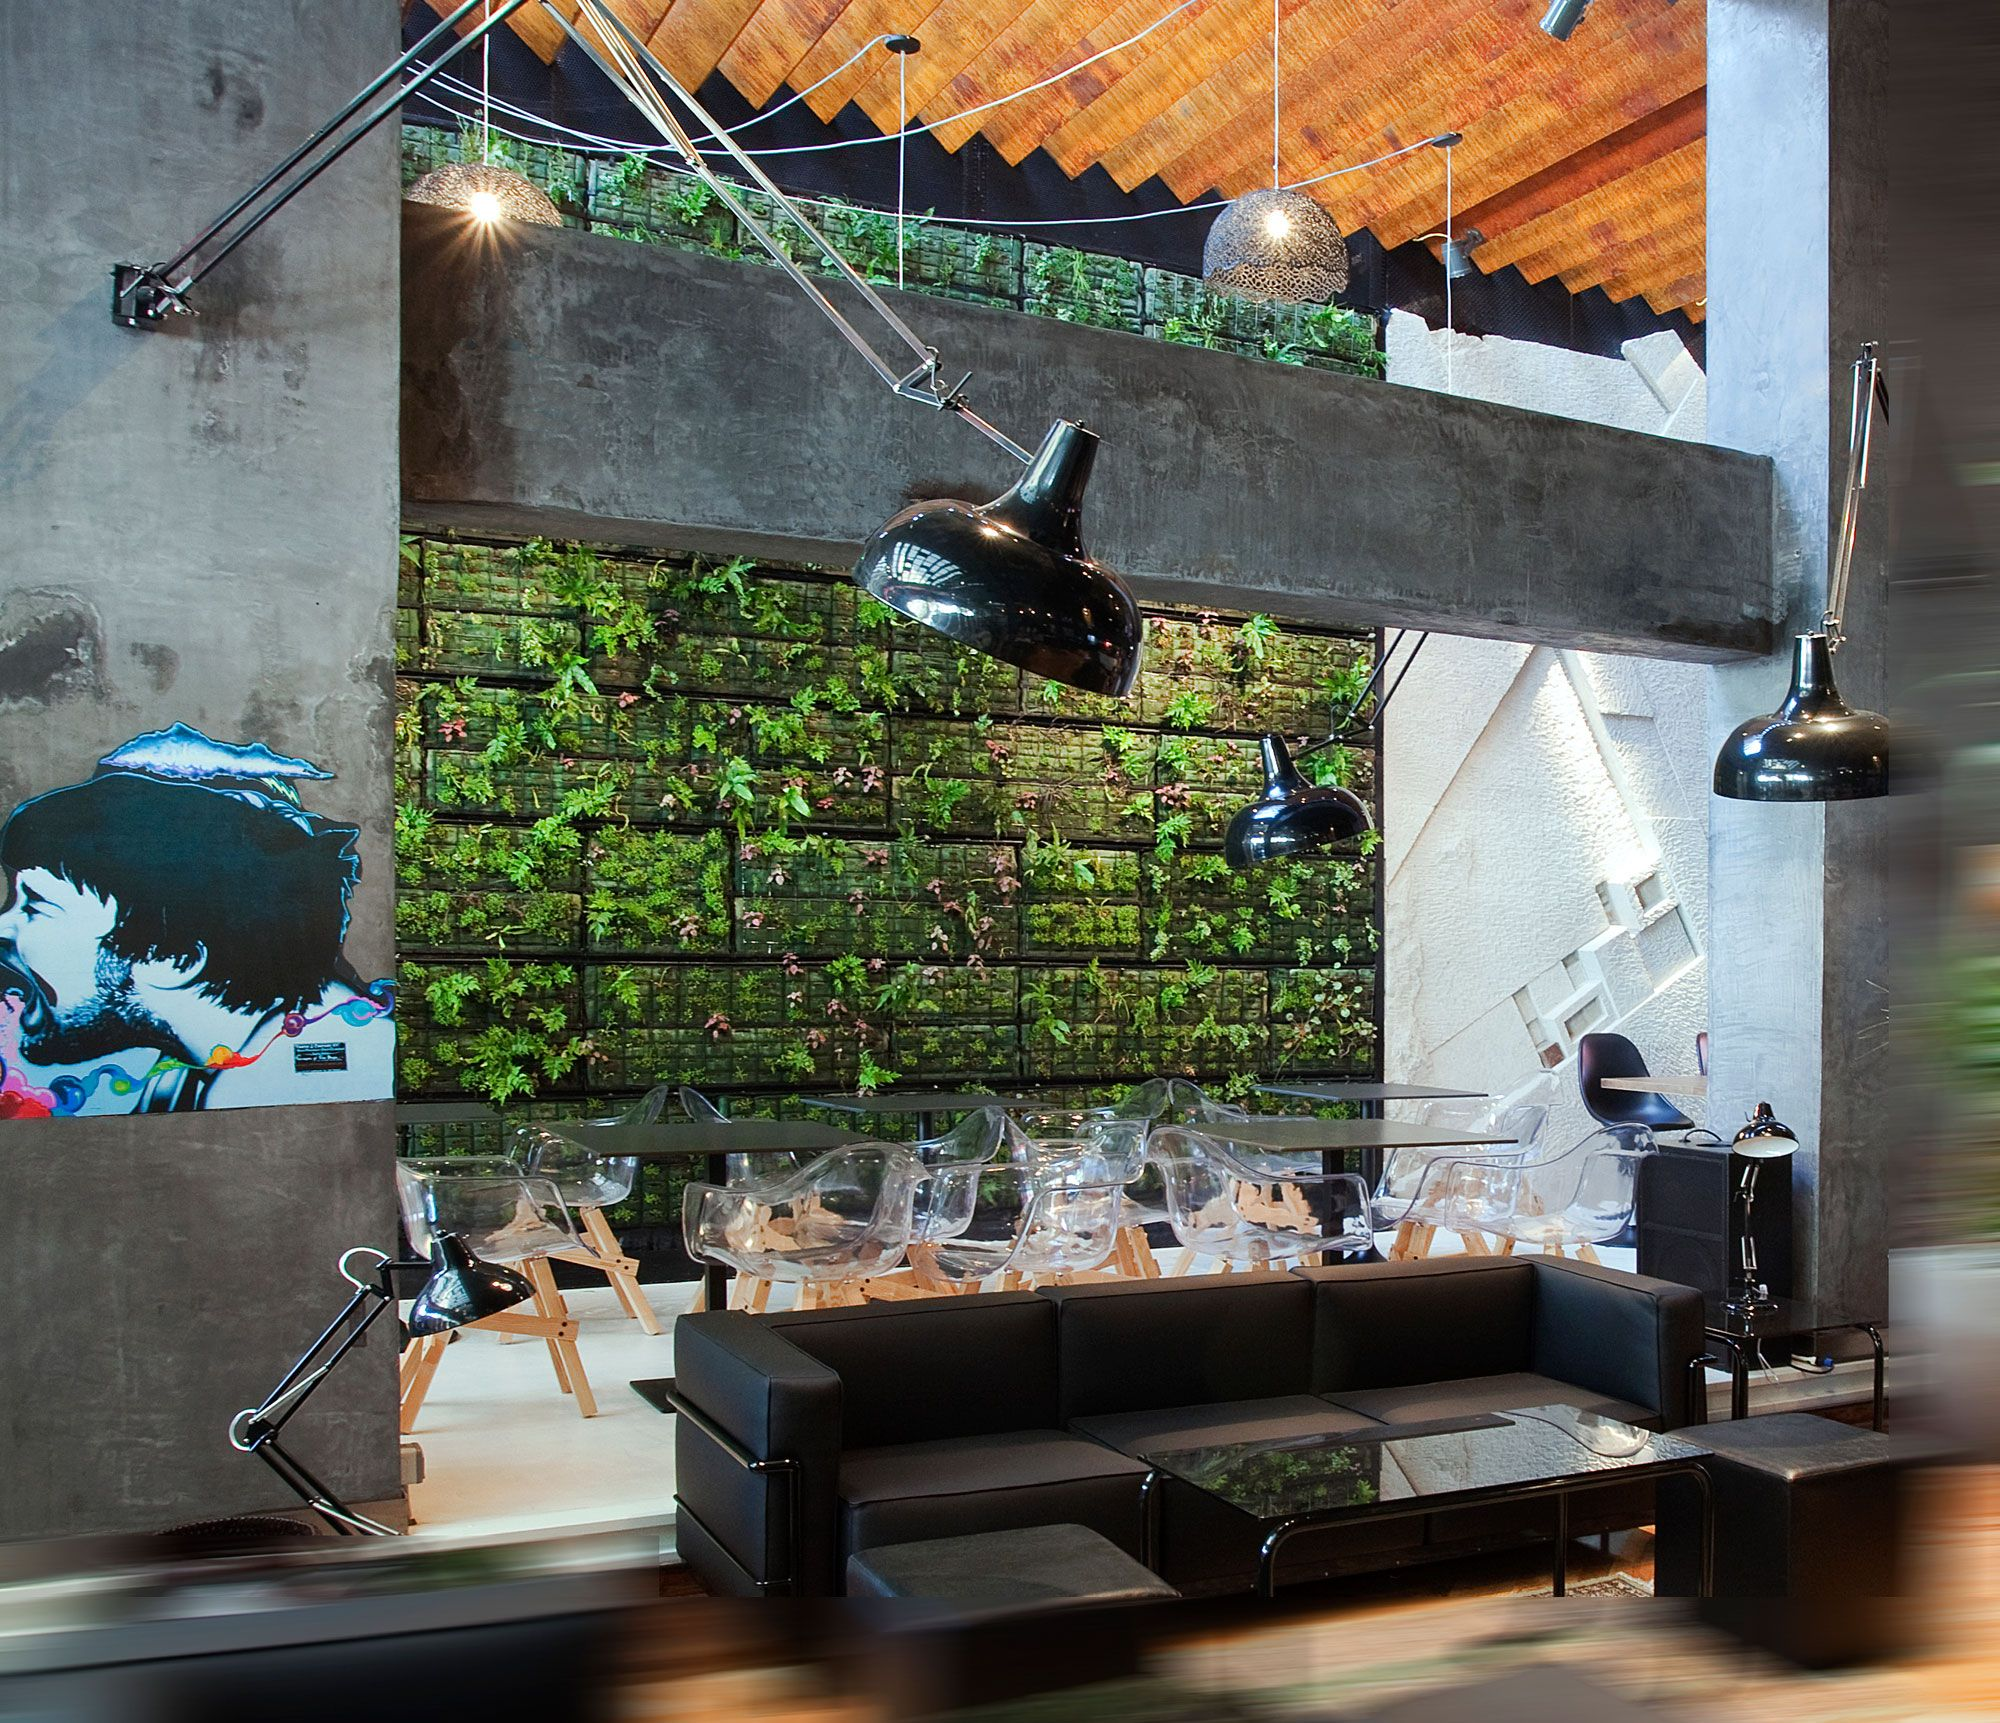 coffee shop decor and interior design in athens | living walls